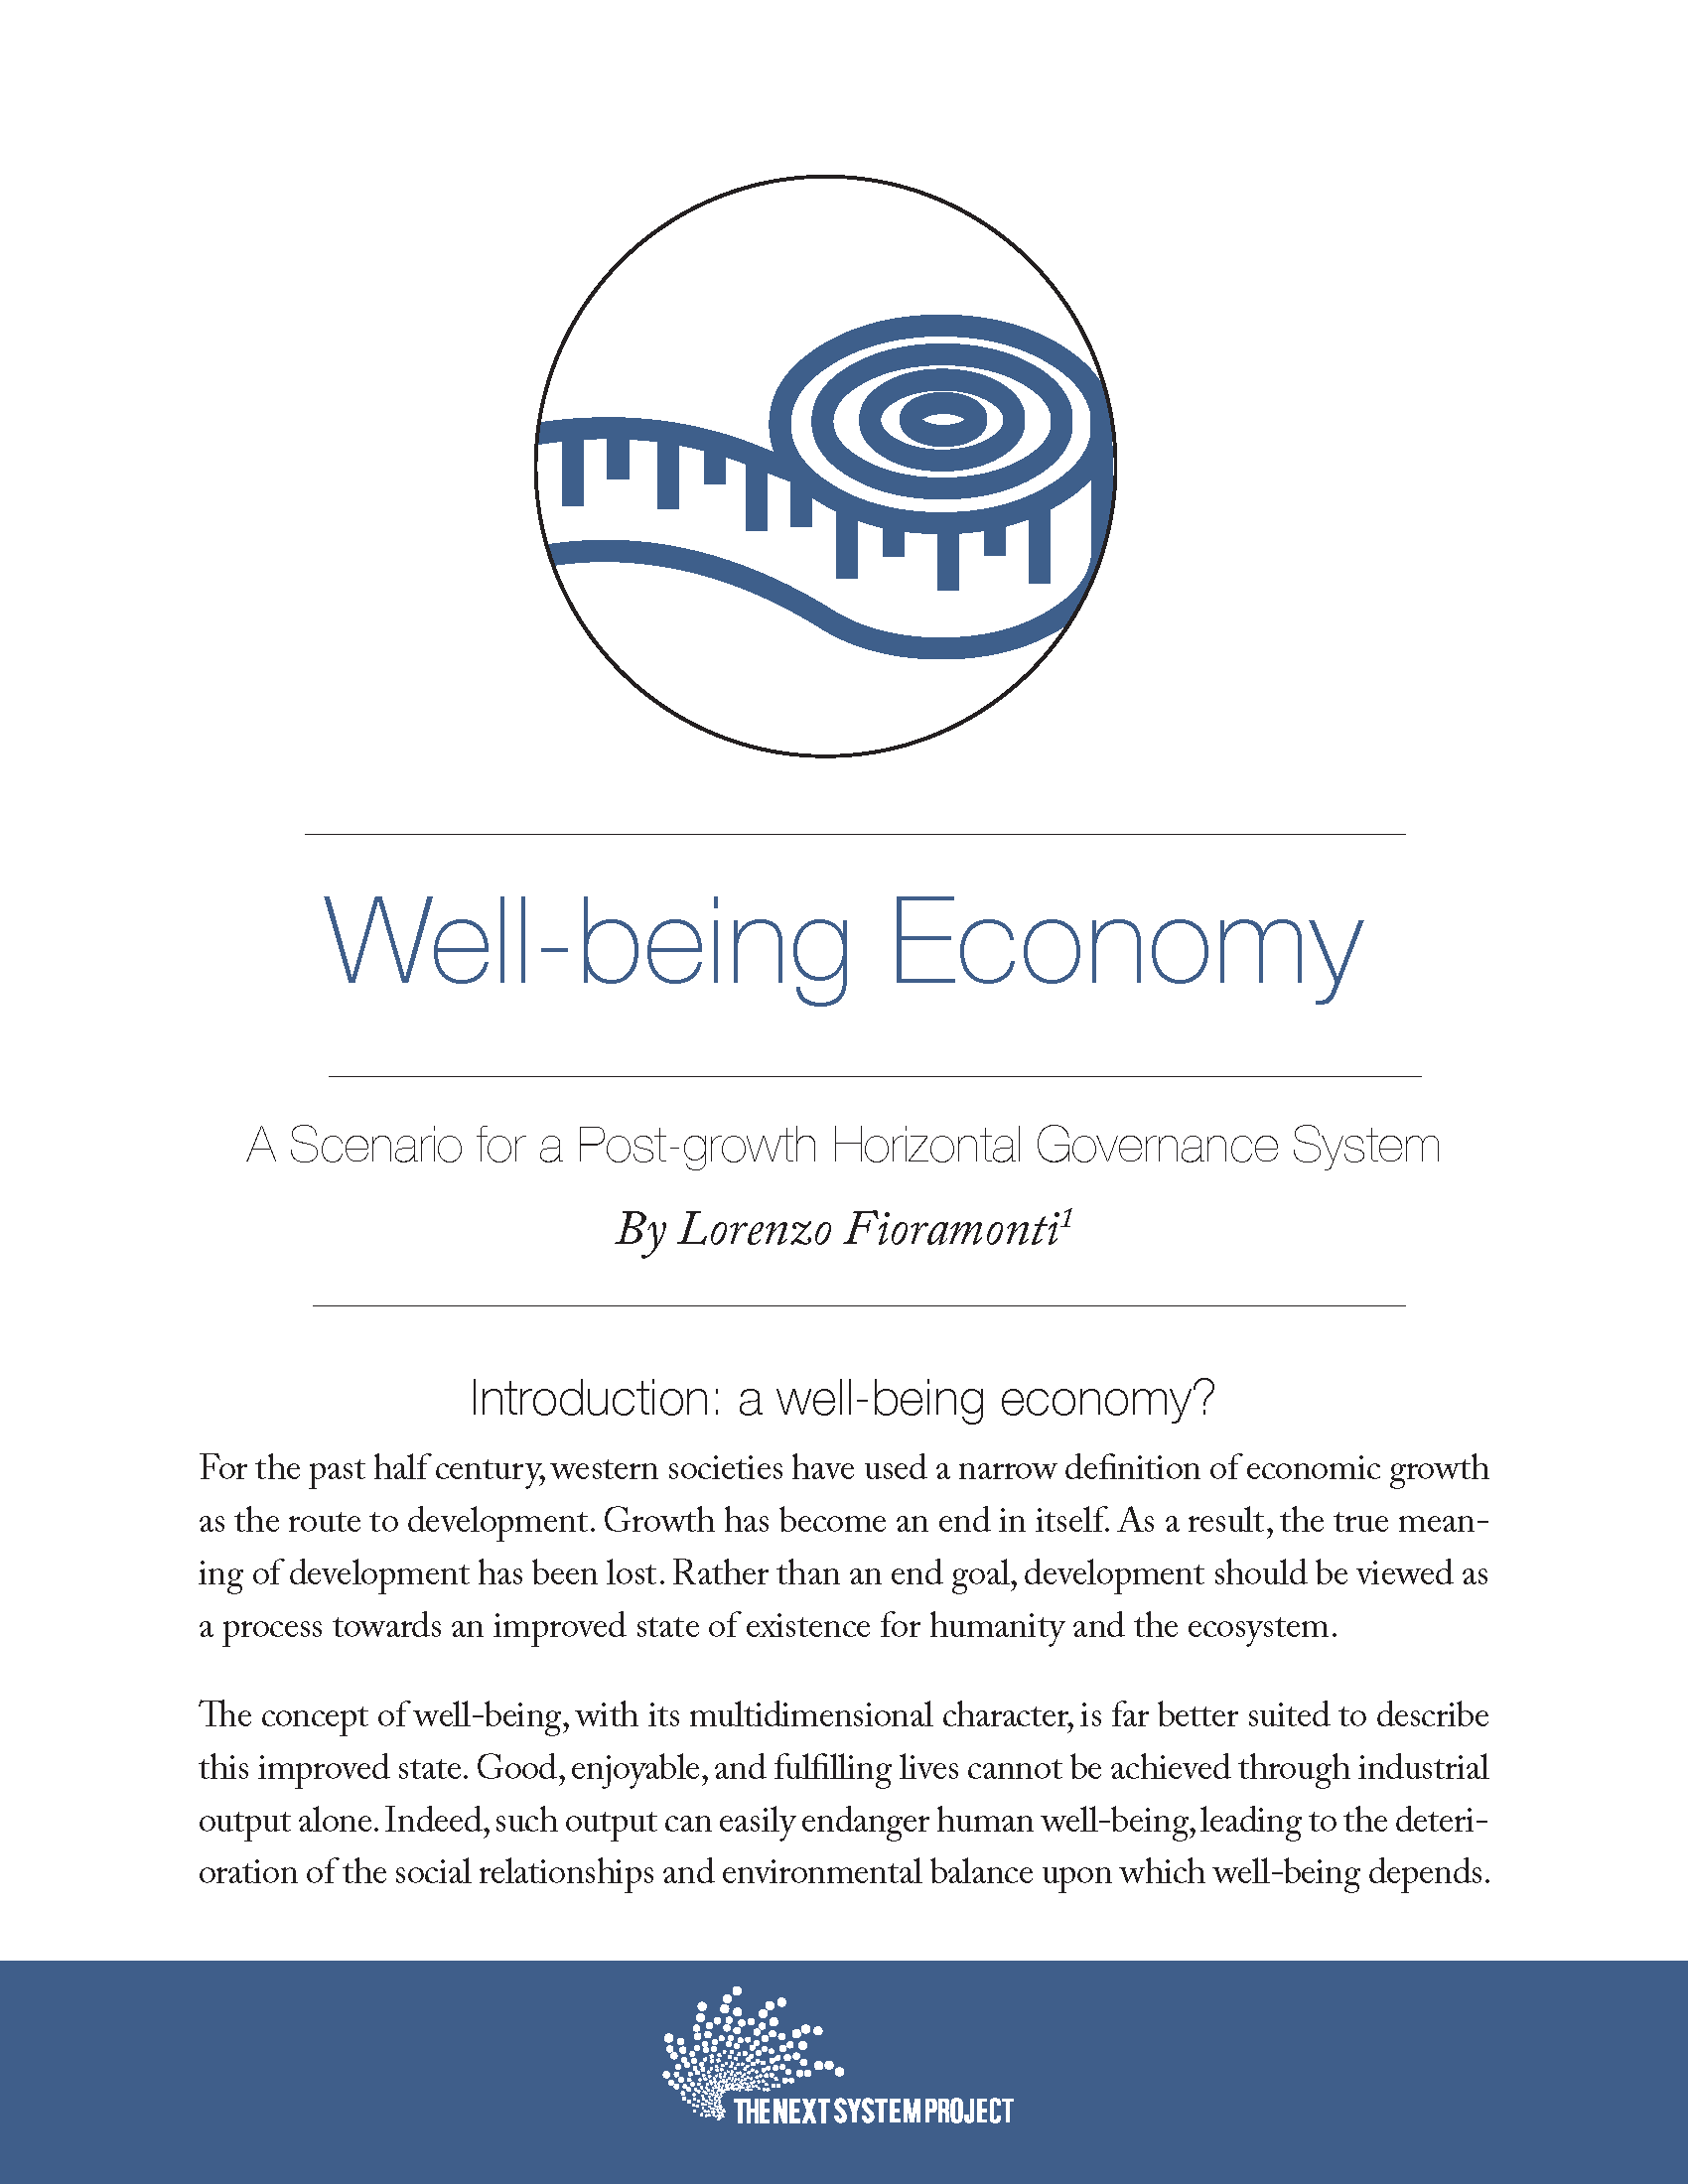 Well-being Economy: A Scenario For A Post-growth Horizontal Governance System